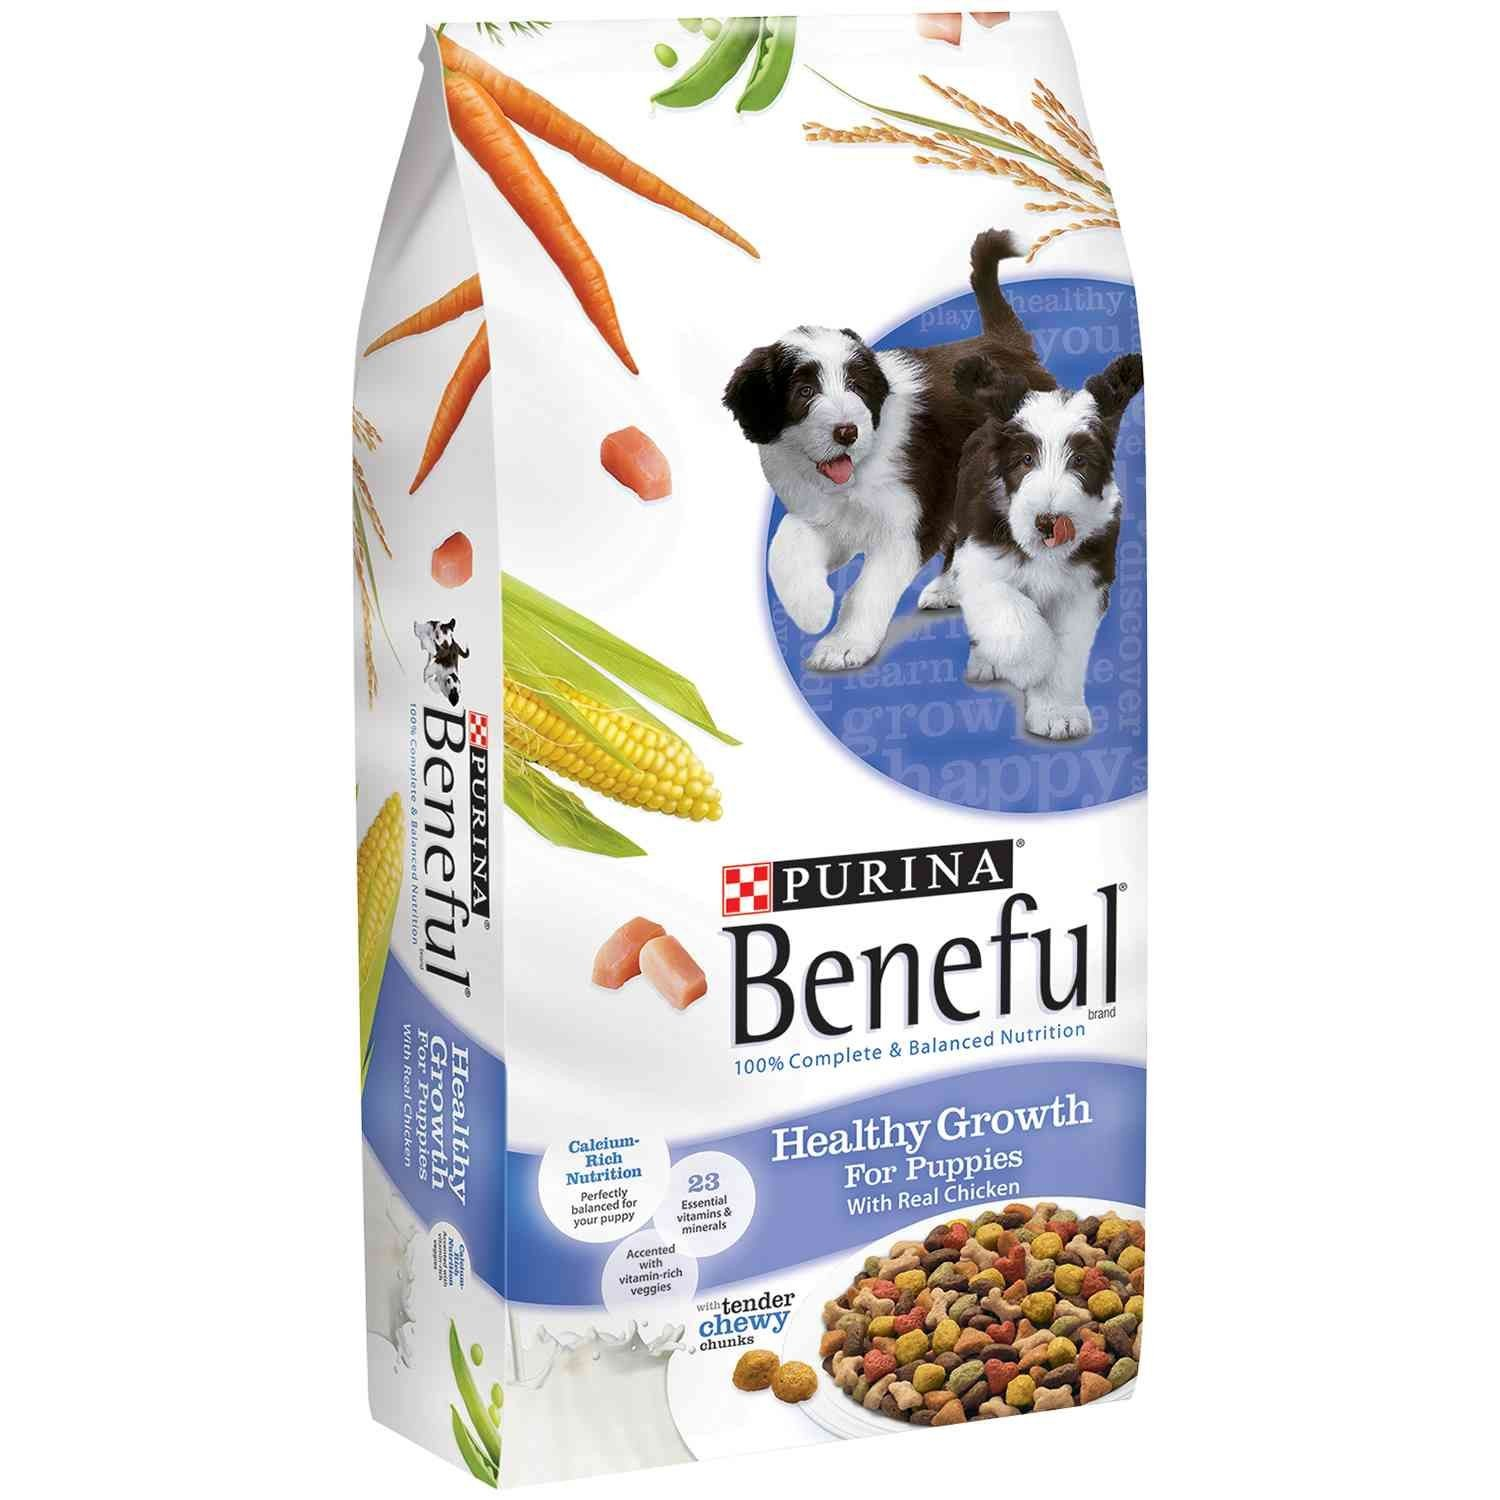 Beneful Healthy Growth For Puppies Theisens Home Auto